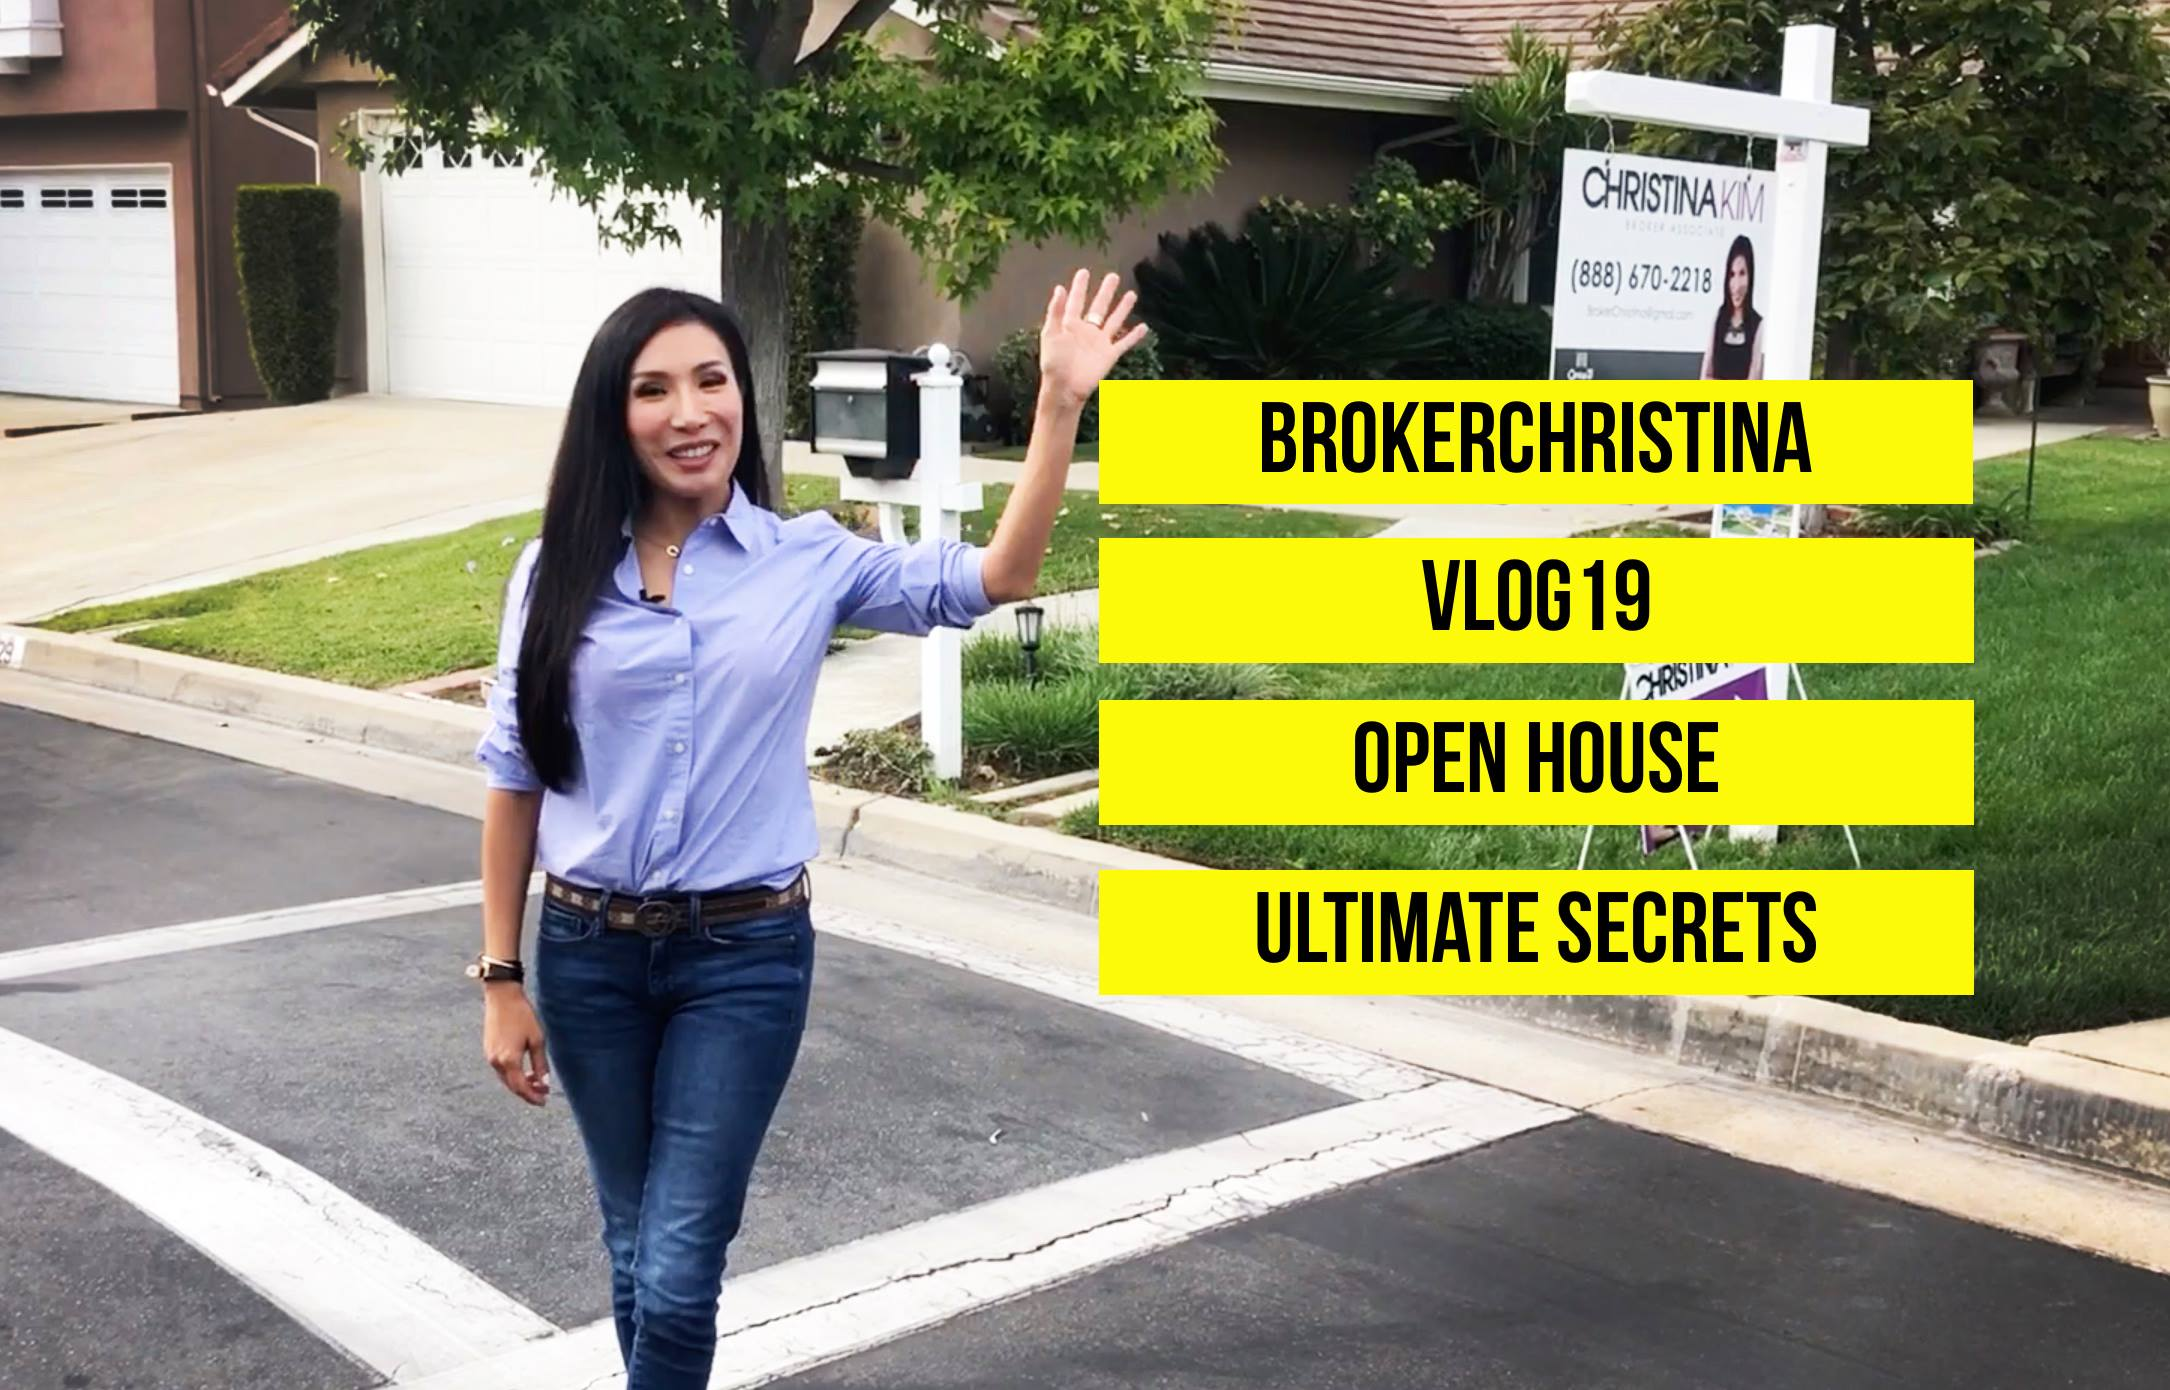 OPEN HOUSE SECRETS | BROKERCHRISTINA VLOG19